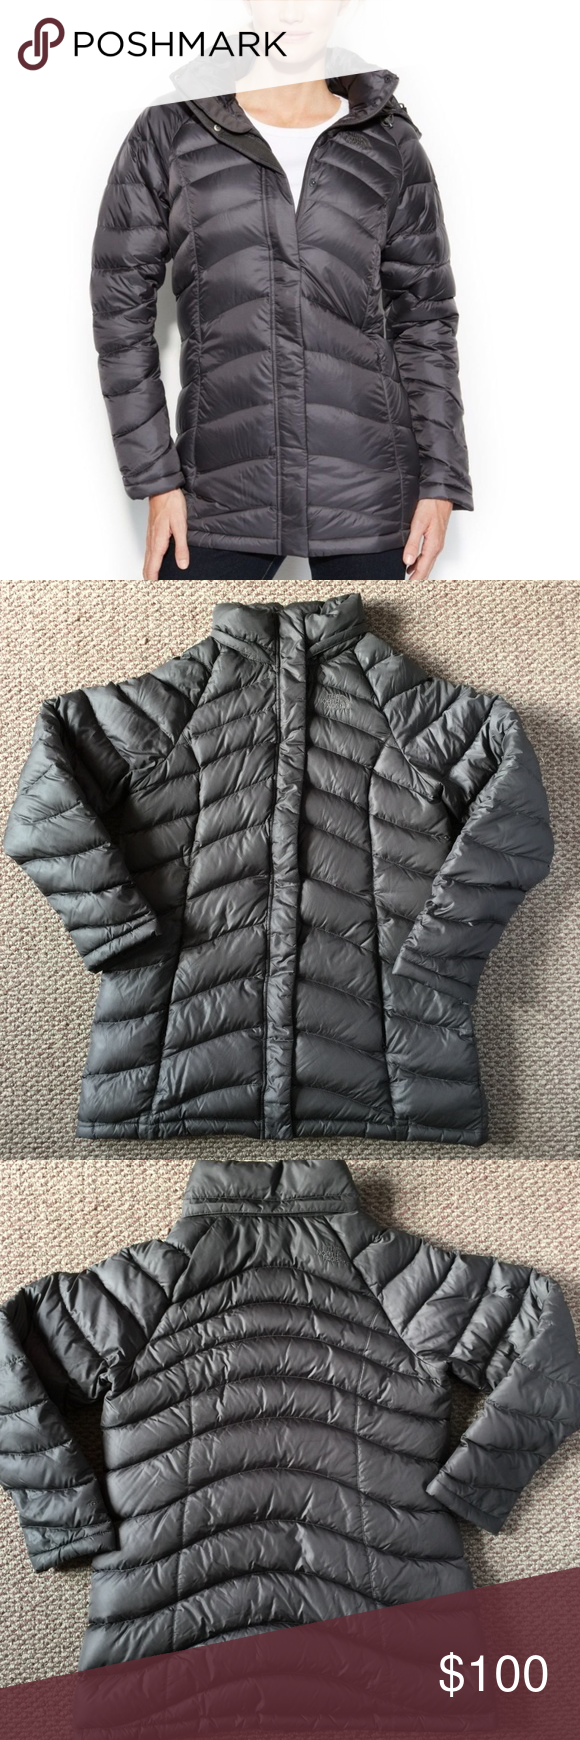 de15405dc North Face Women's Puffer Coat Size M For sale is a North Face ...